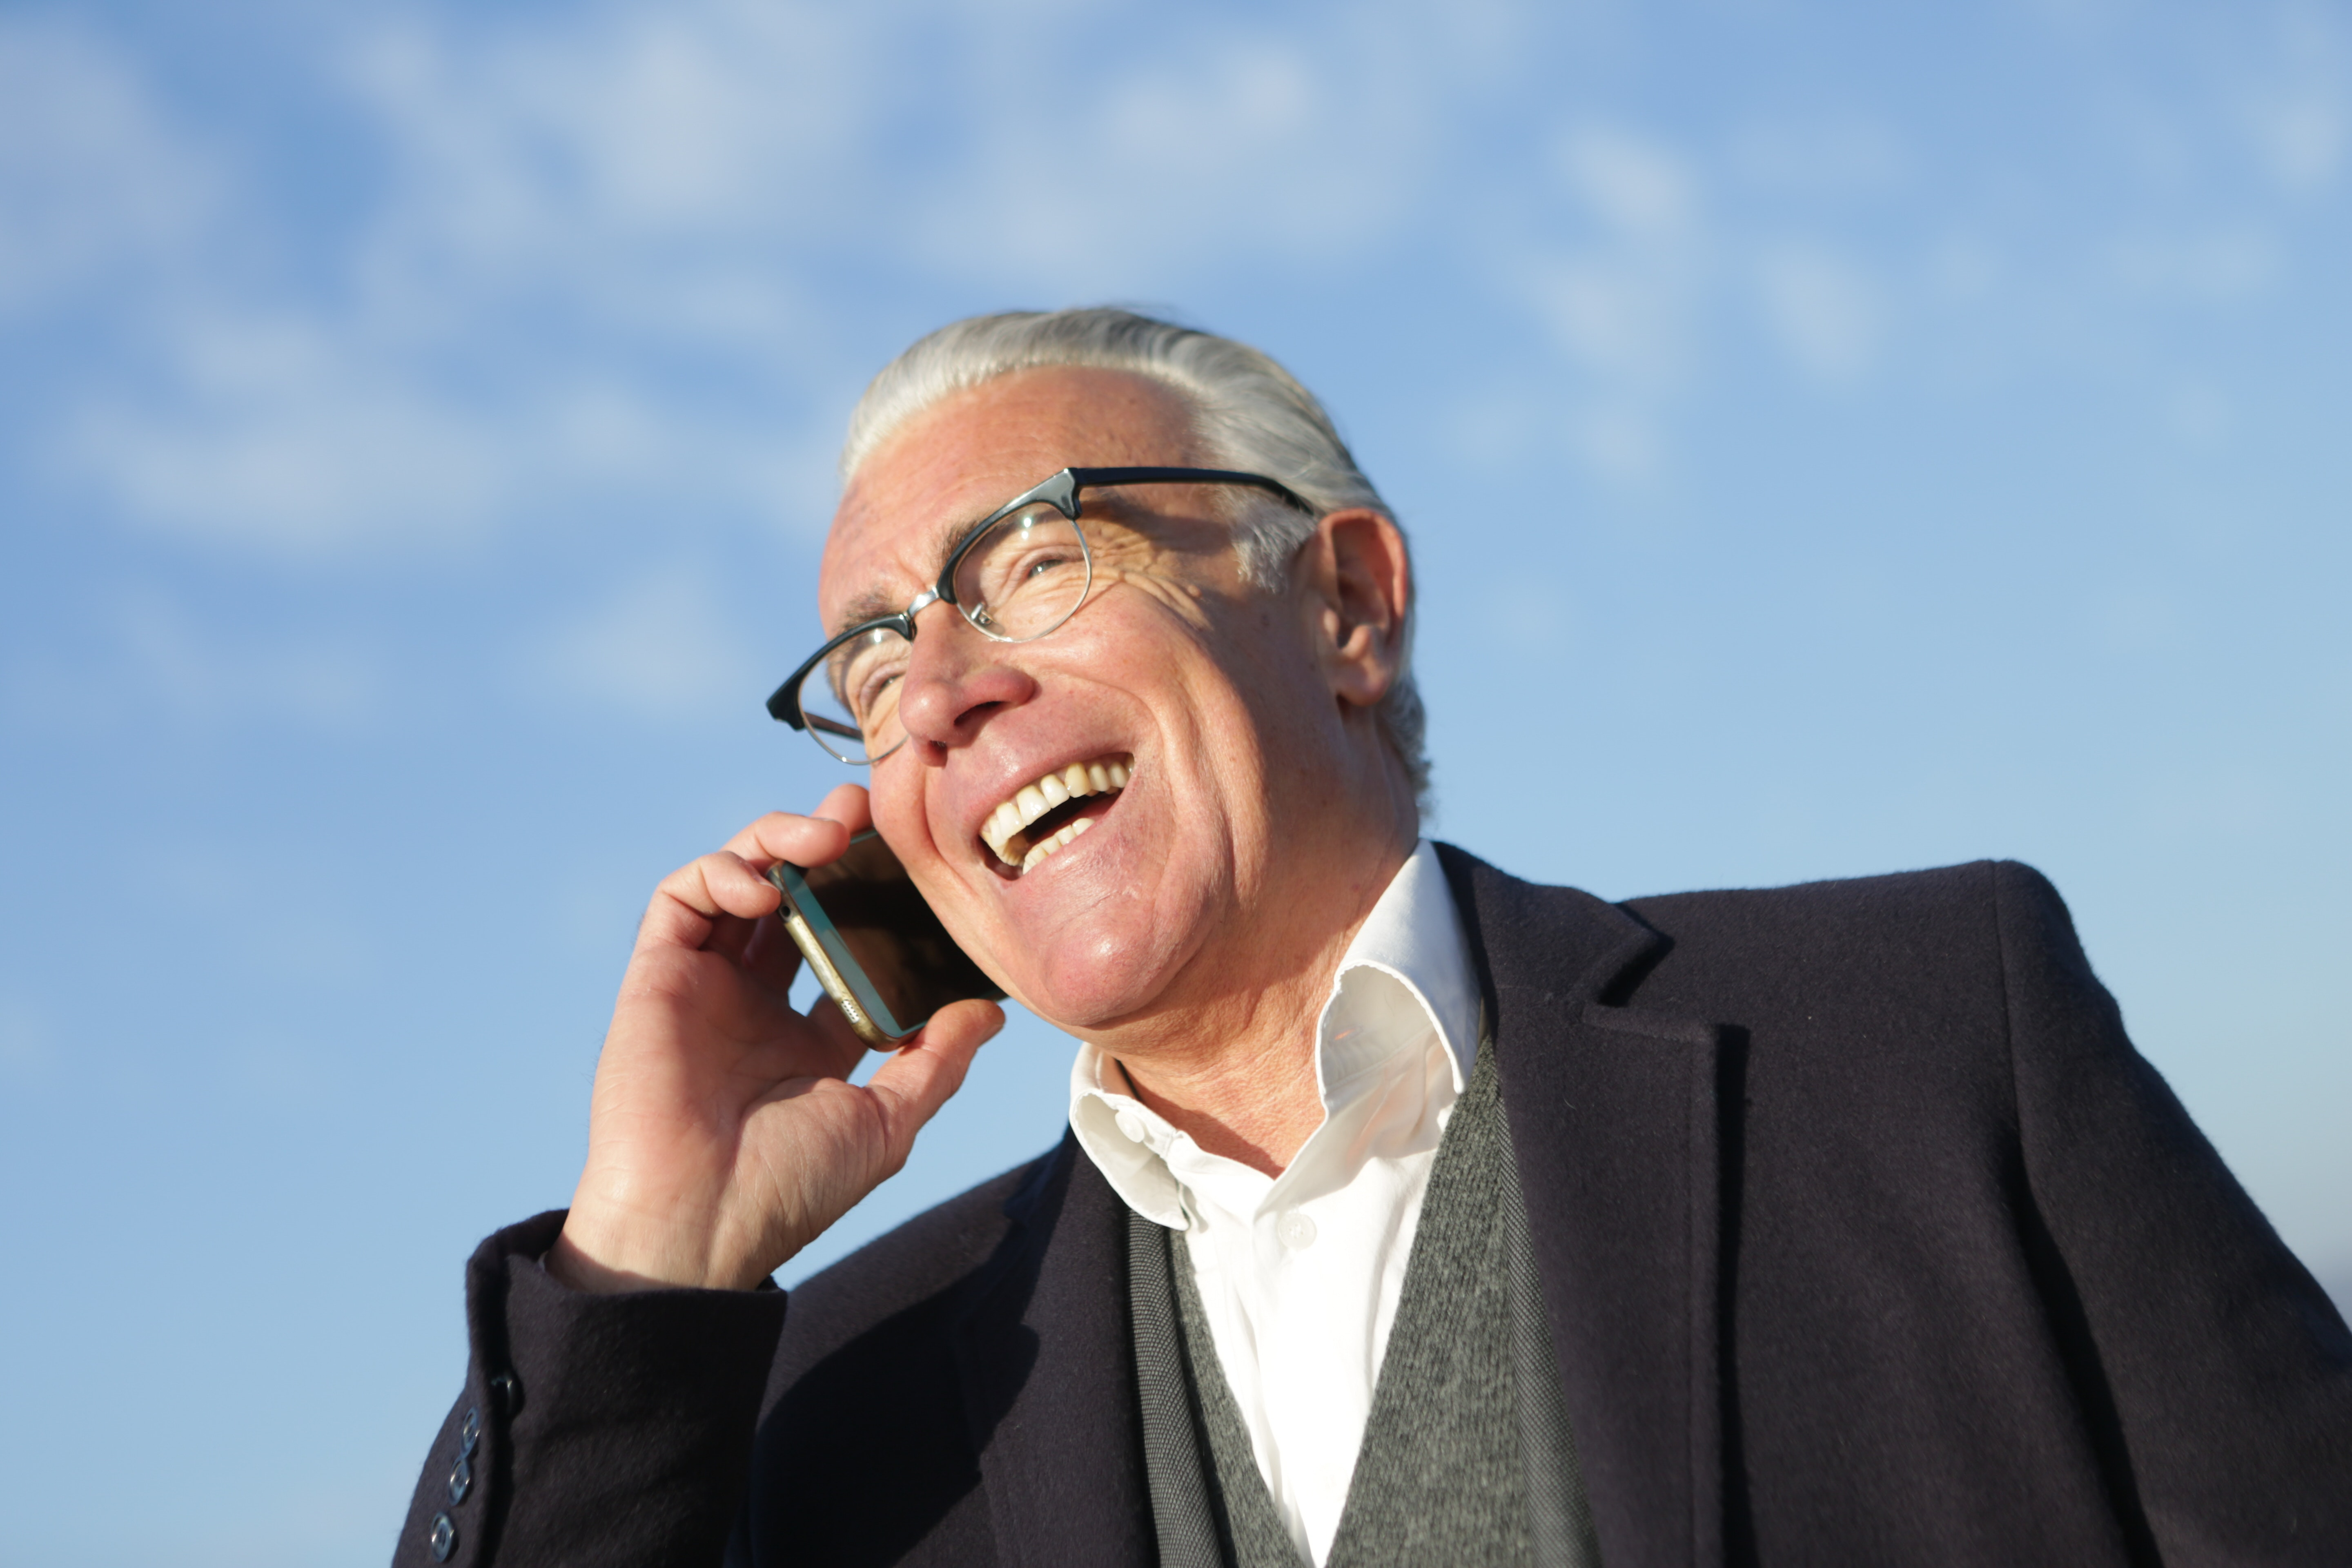 business man talking on the phone and smiling with blue sky in the background